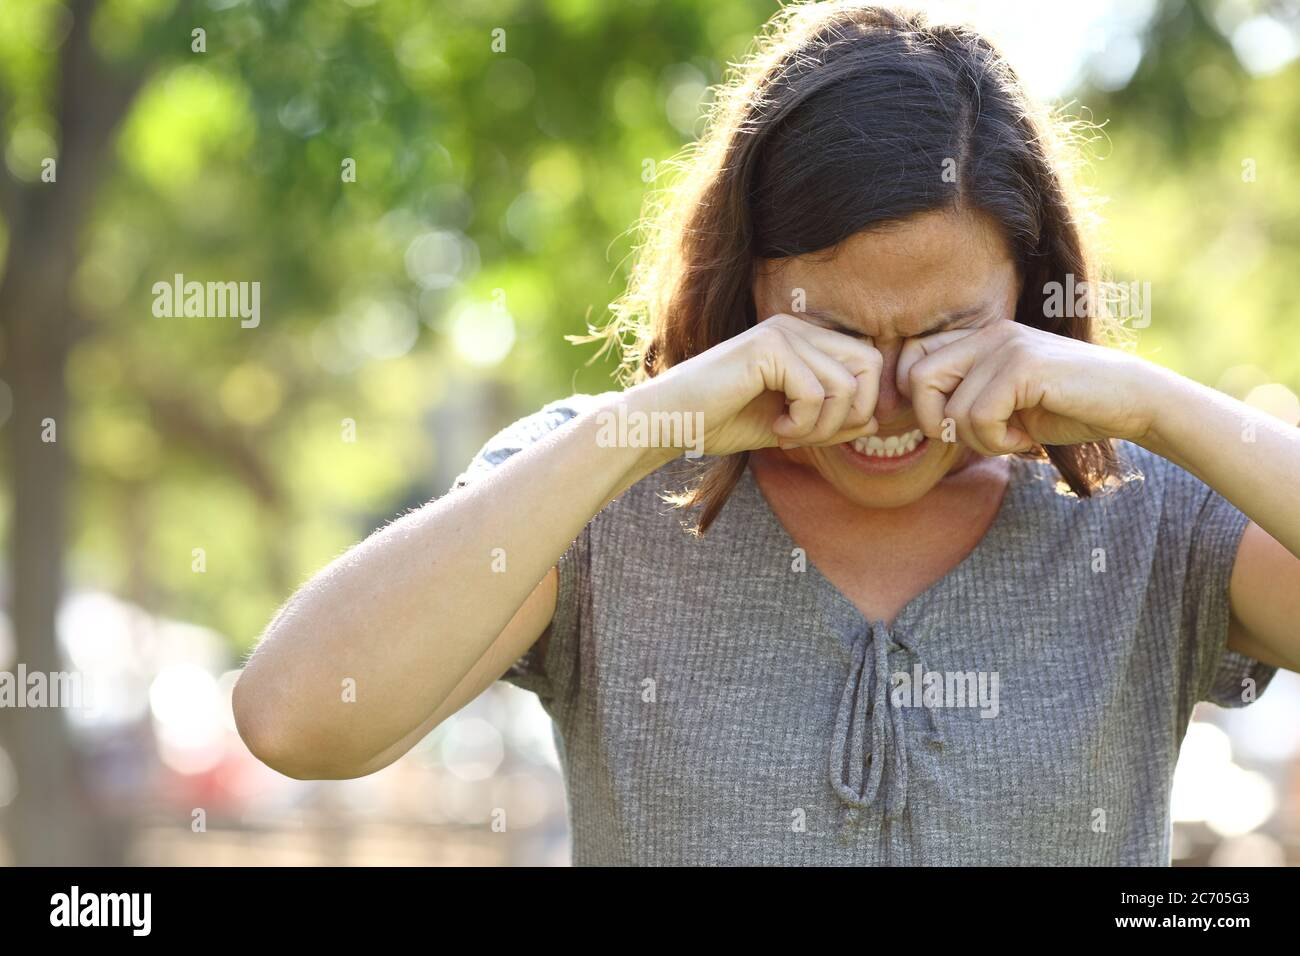 Middle age woman with itchy eyes scratching standing in the park at summer Stock Photo